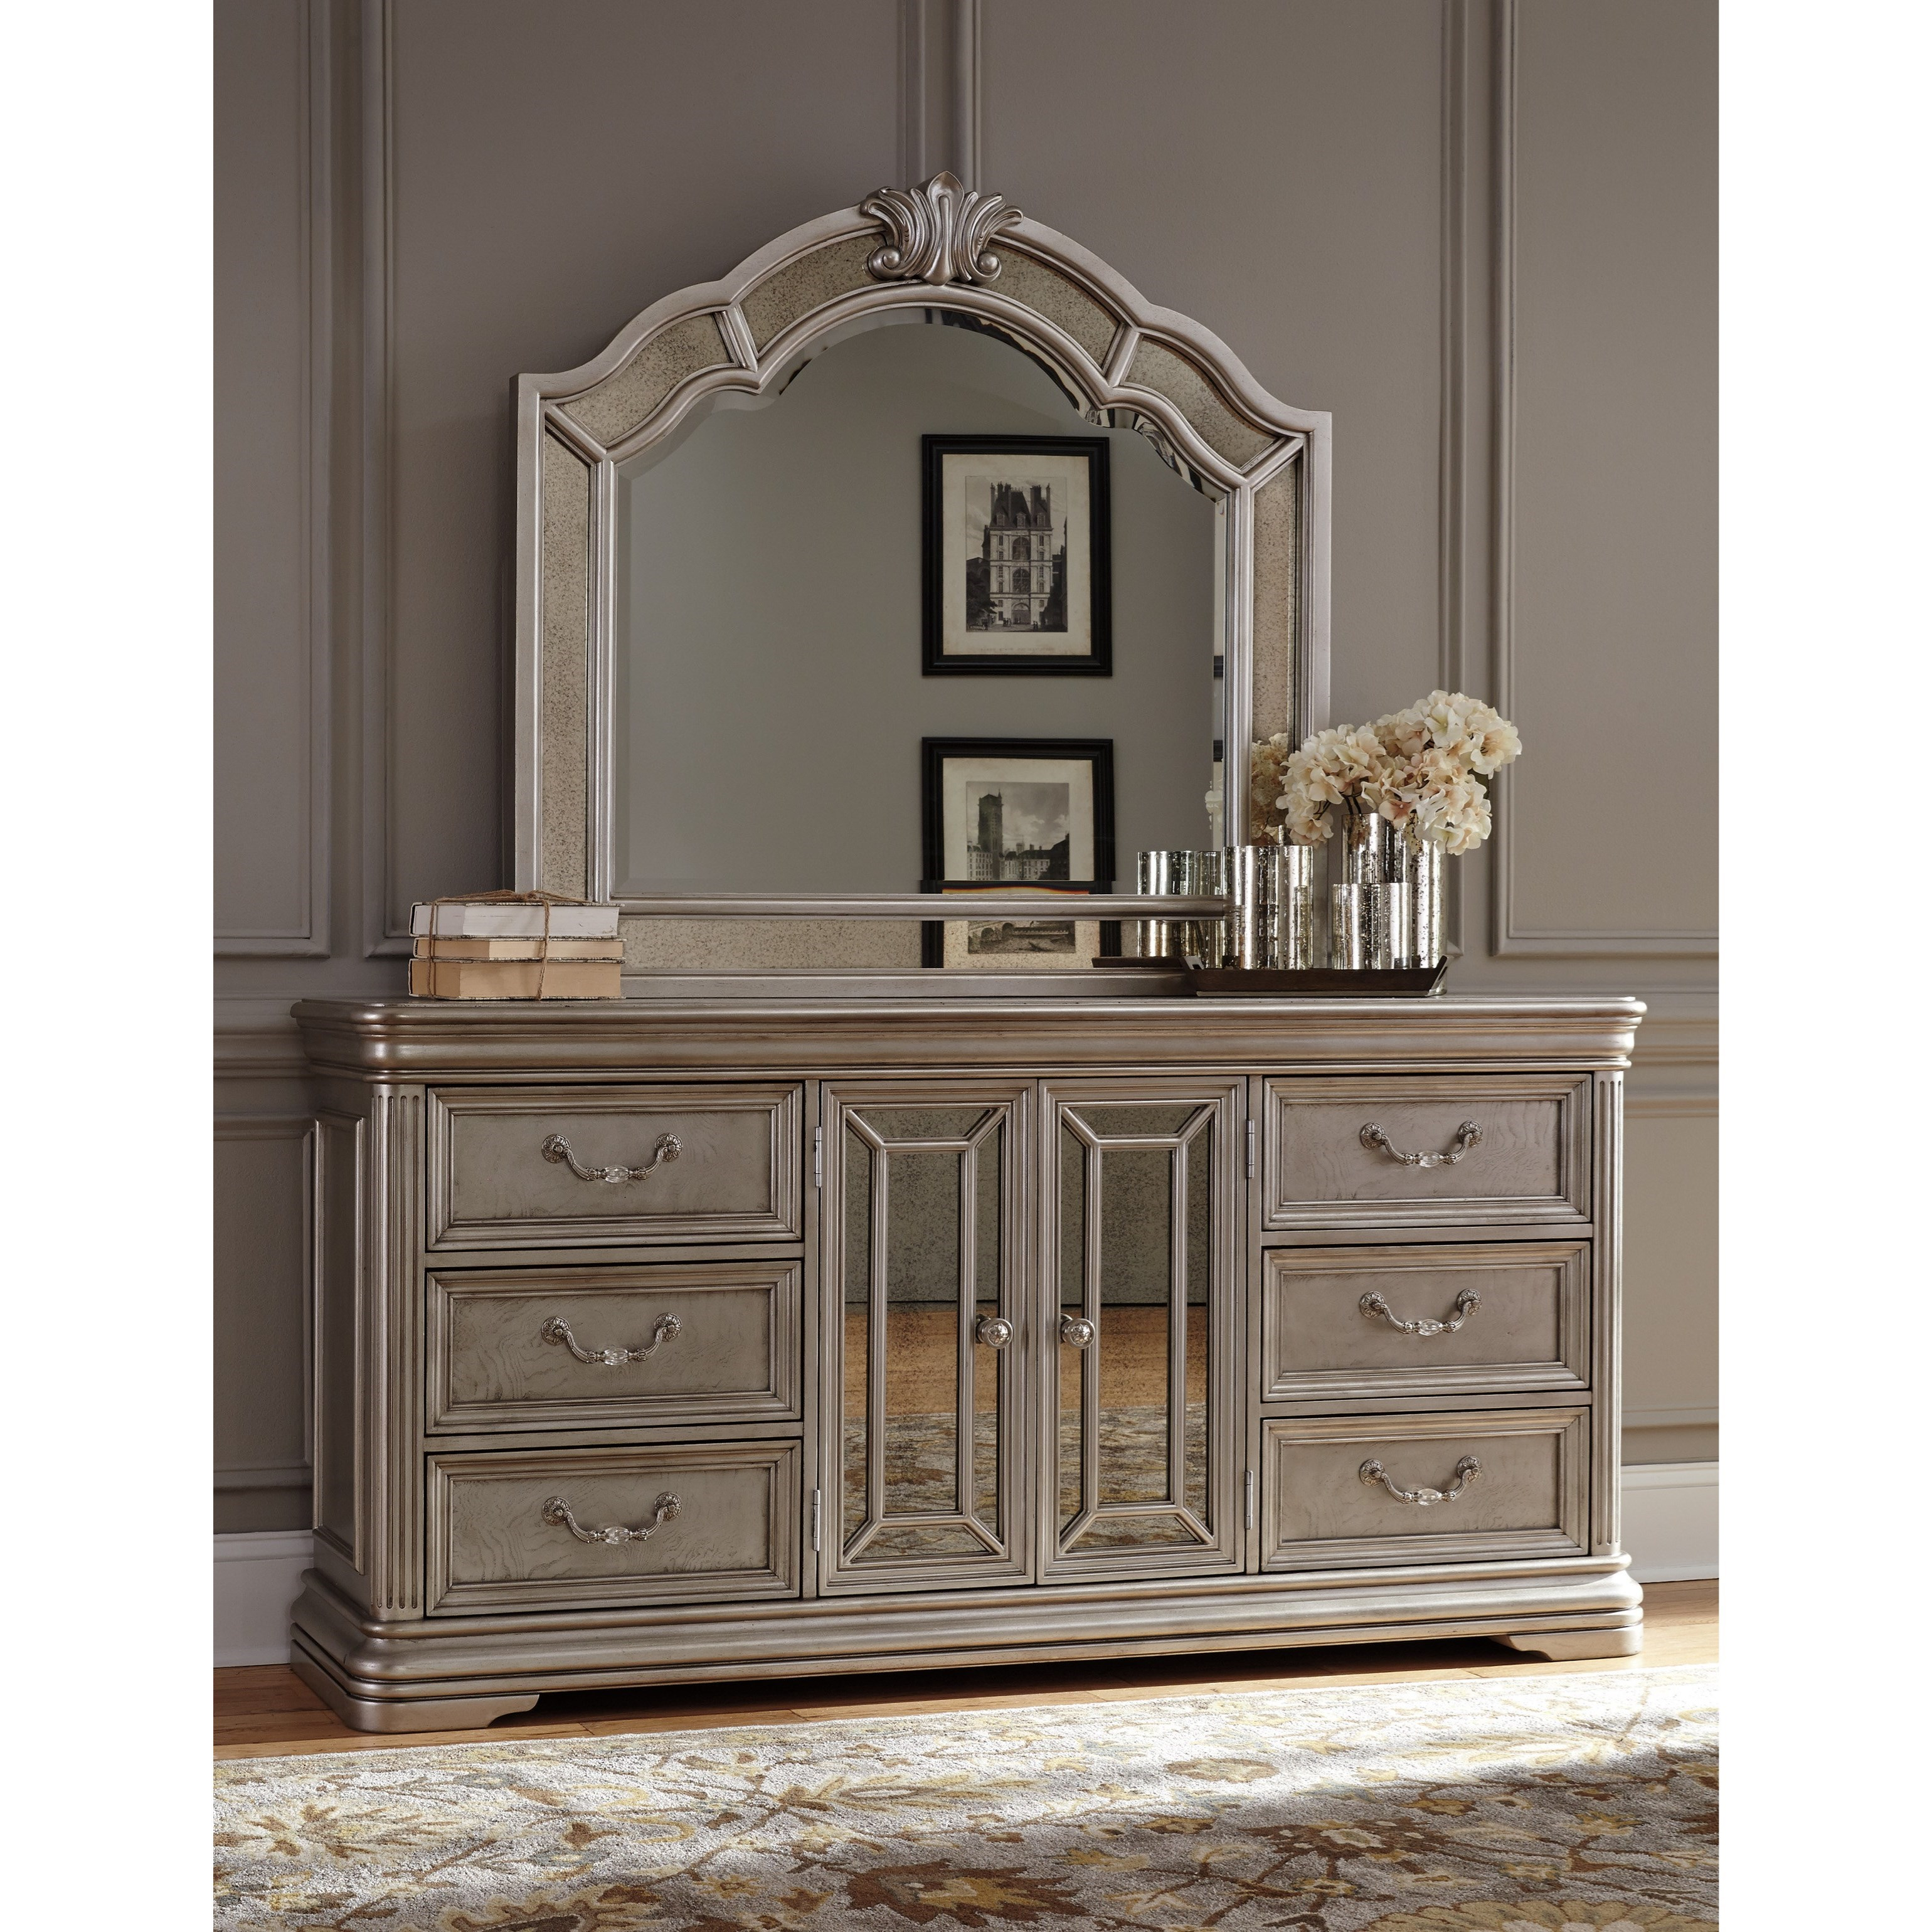 Signature Design By Ashley Birlanny Dresser With Mirror Panels Bedroom Mirror Miskelly